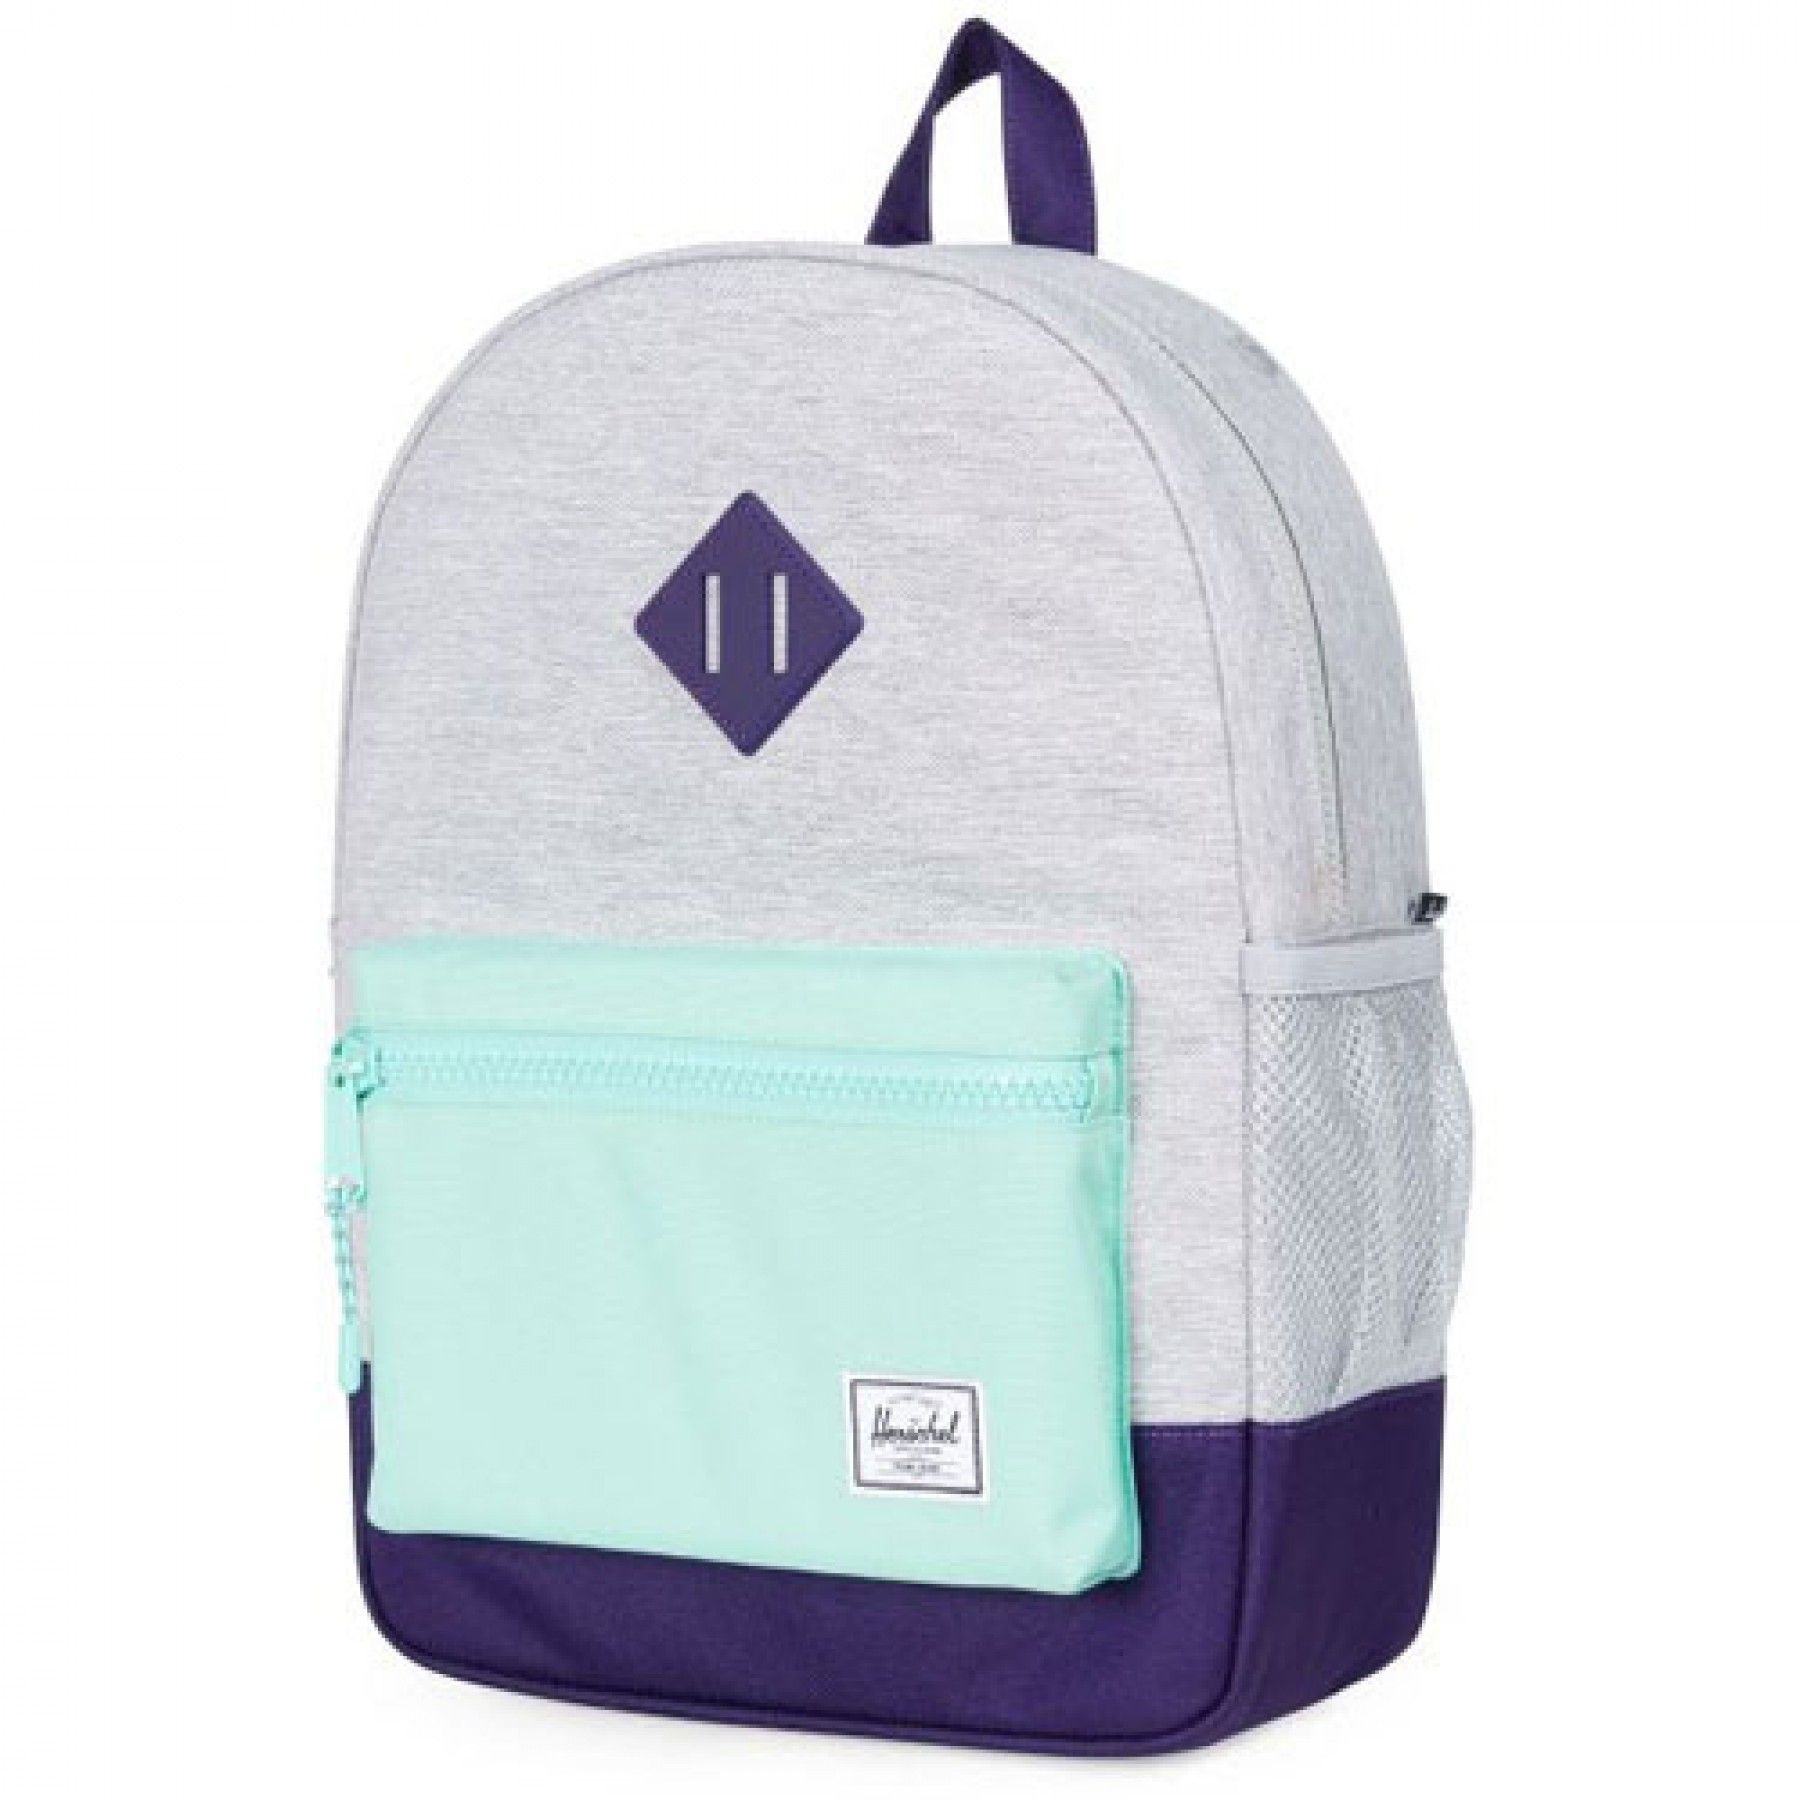 4a716e2ce0c affordable herschel rugzak heritage youth light grey cross lucite green os  with herschel rugzak